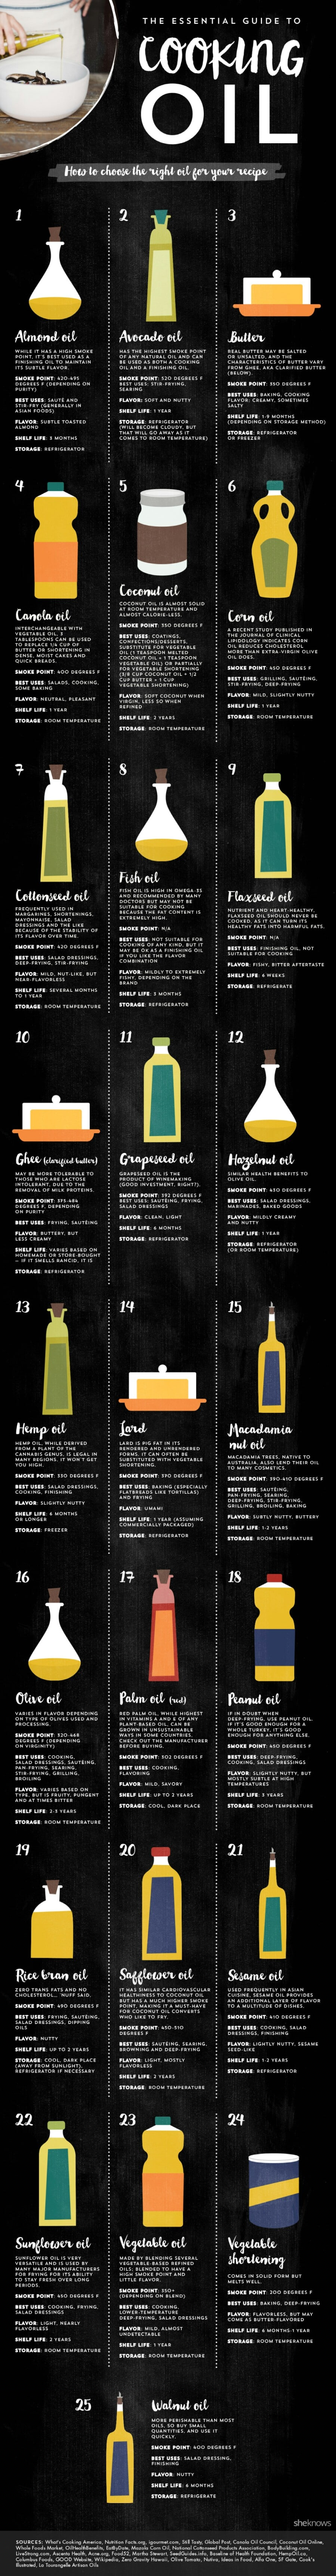 Here is a more detailed guide to cooking oils.